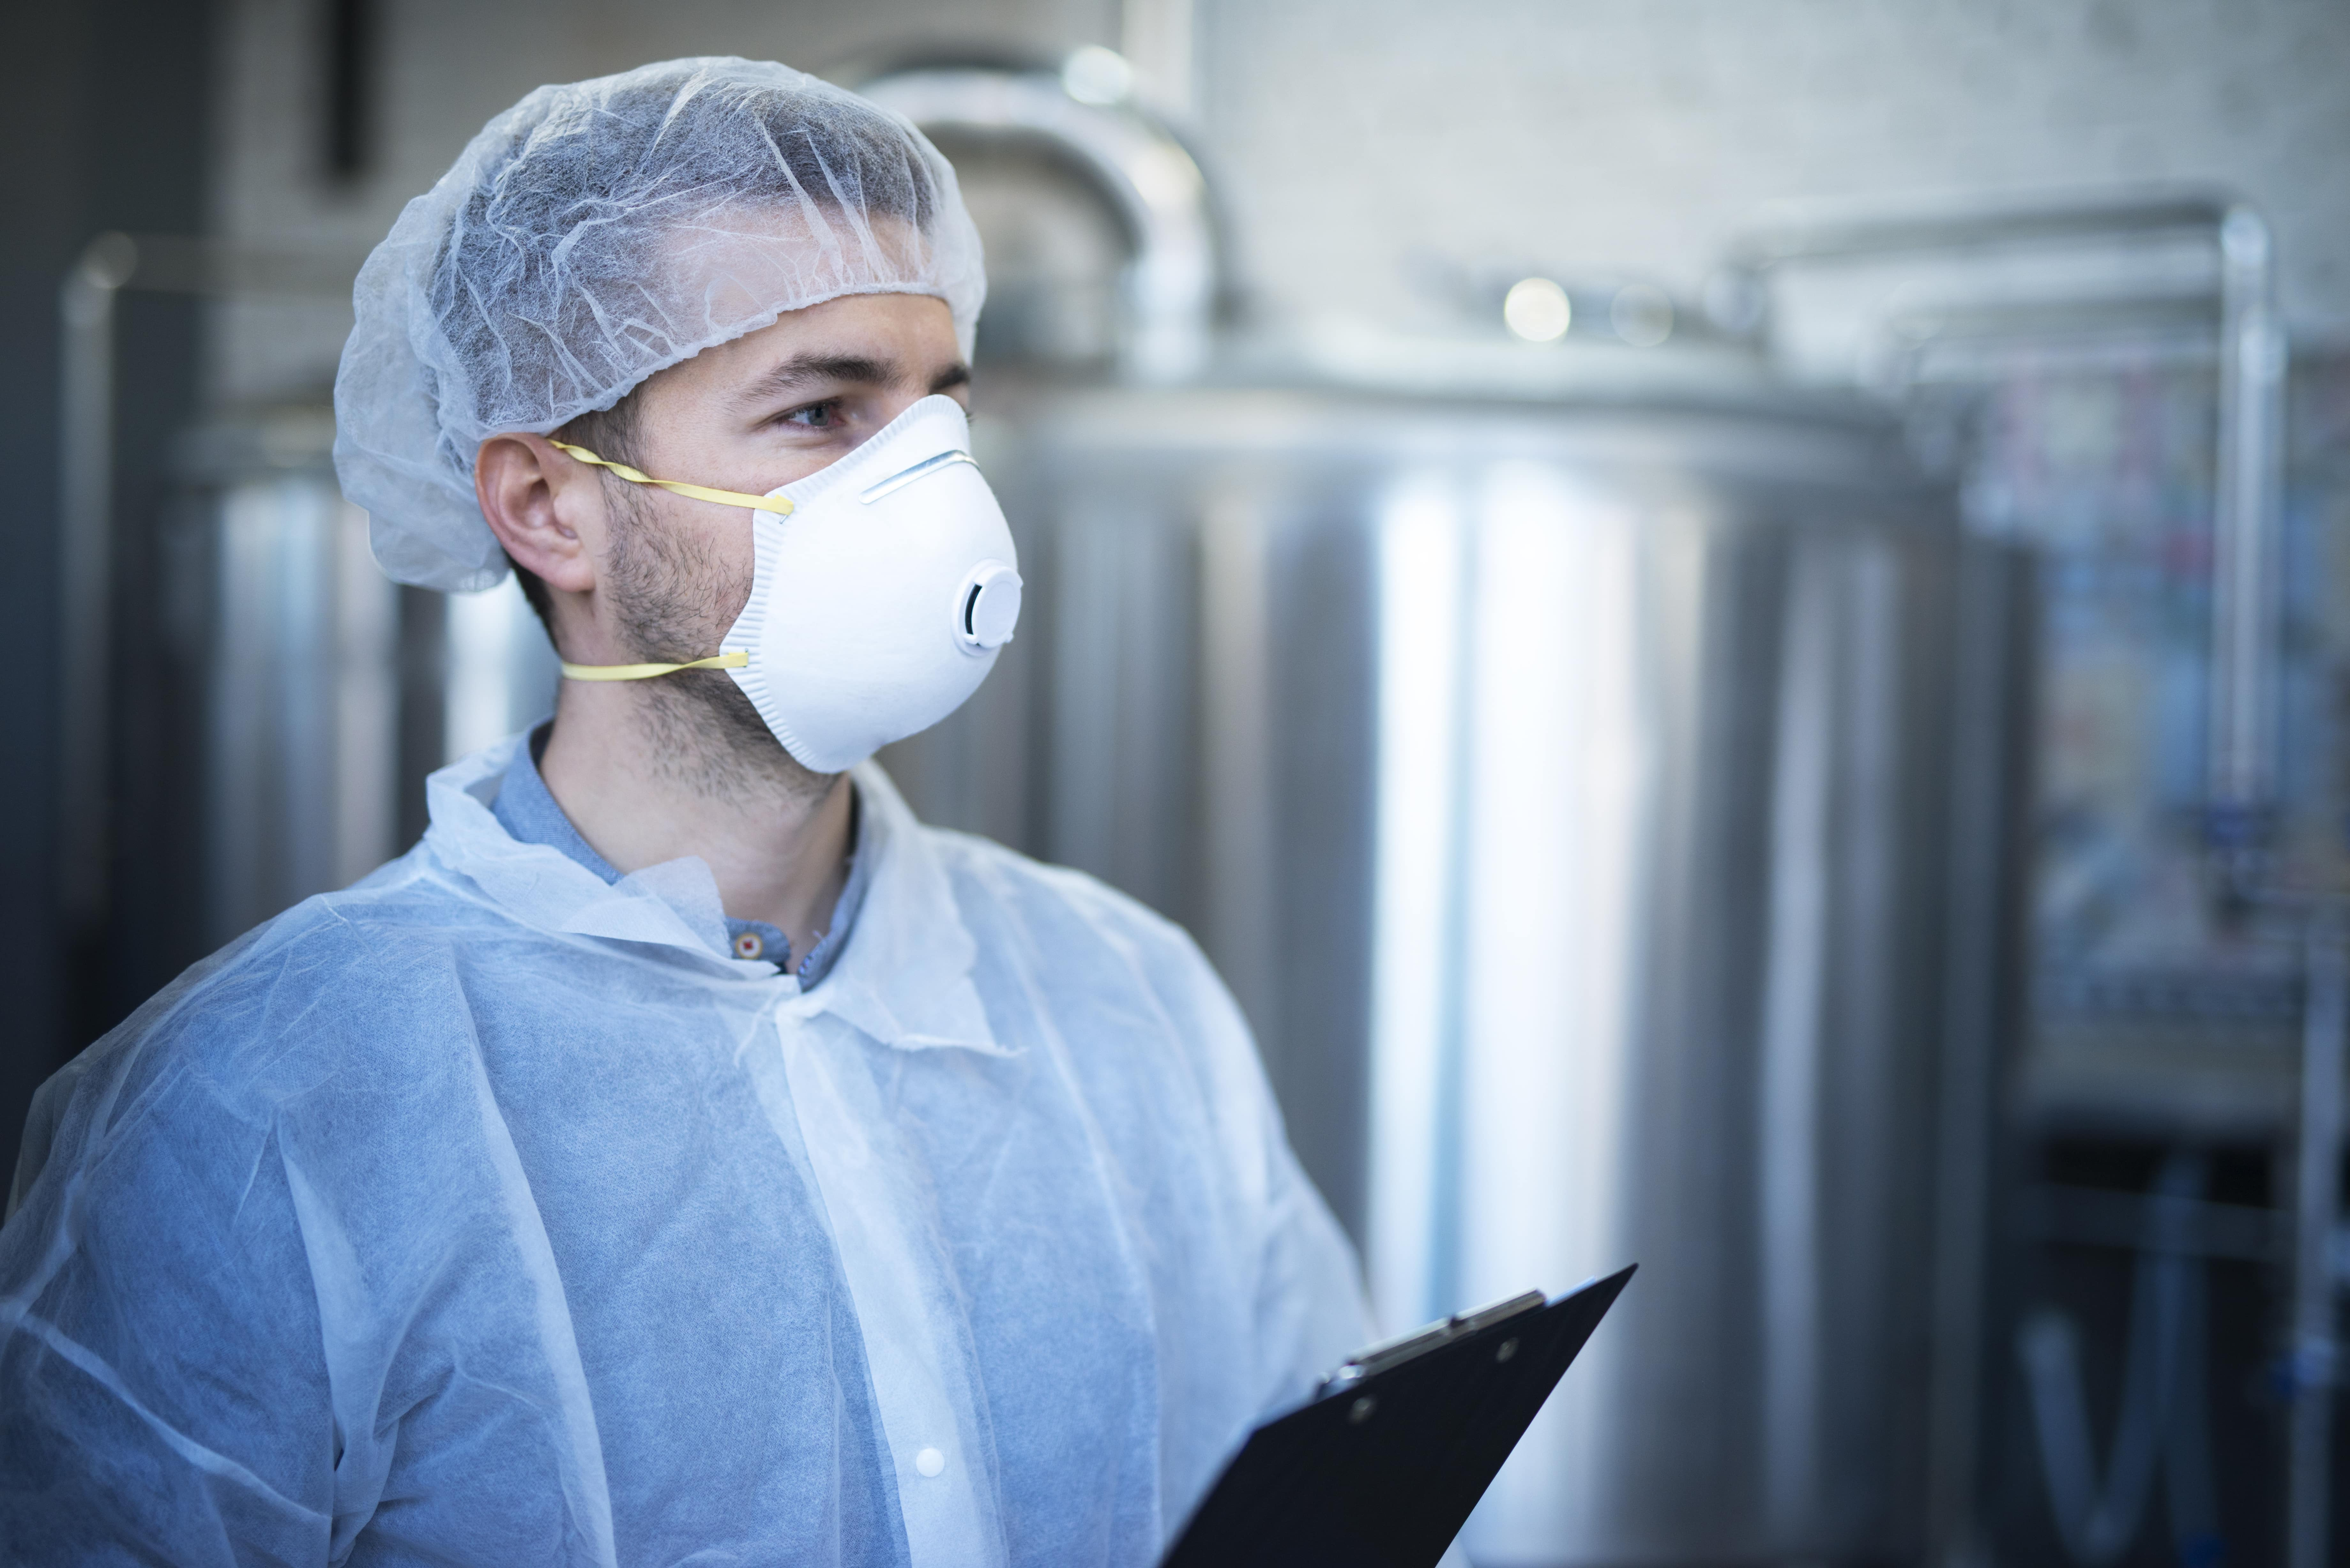 technologist-working-food-processing-factory-medical-production-checking-quality-distribution-min